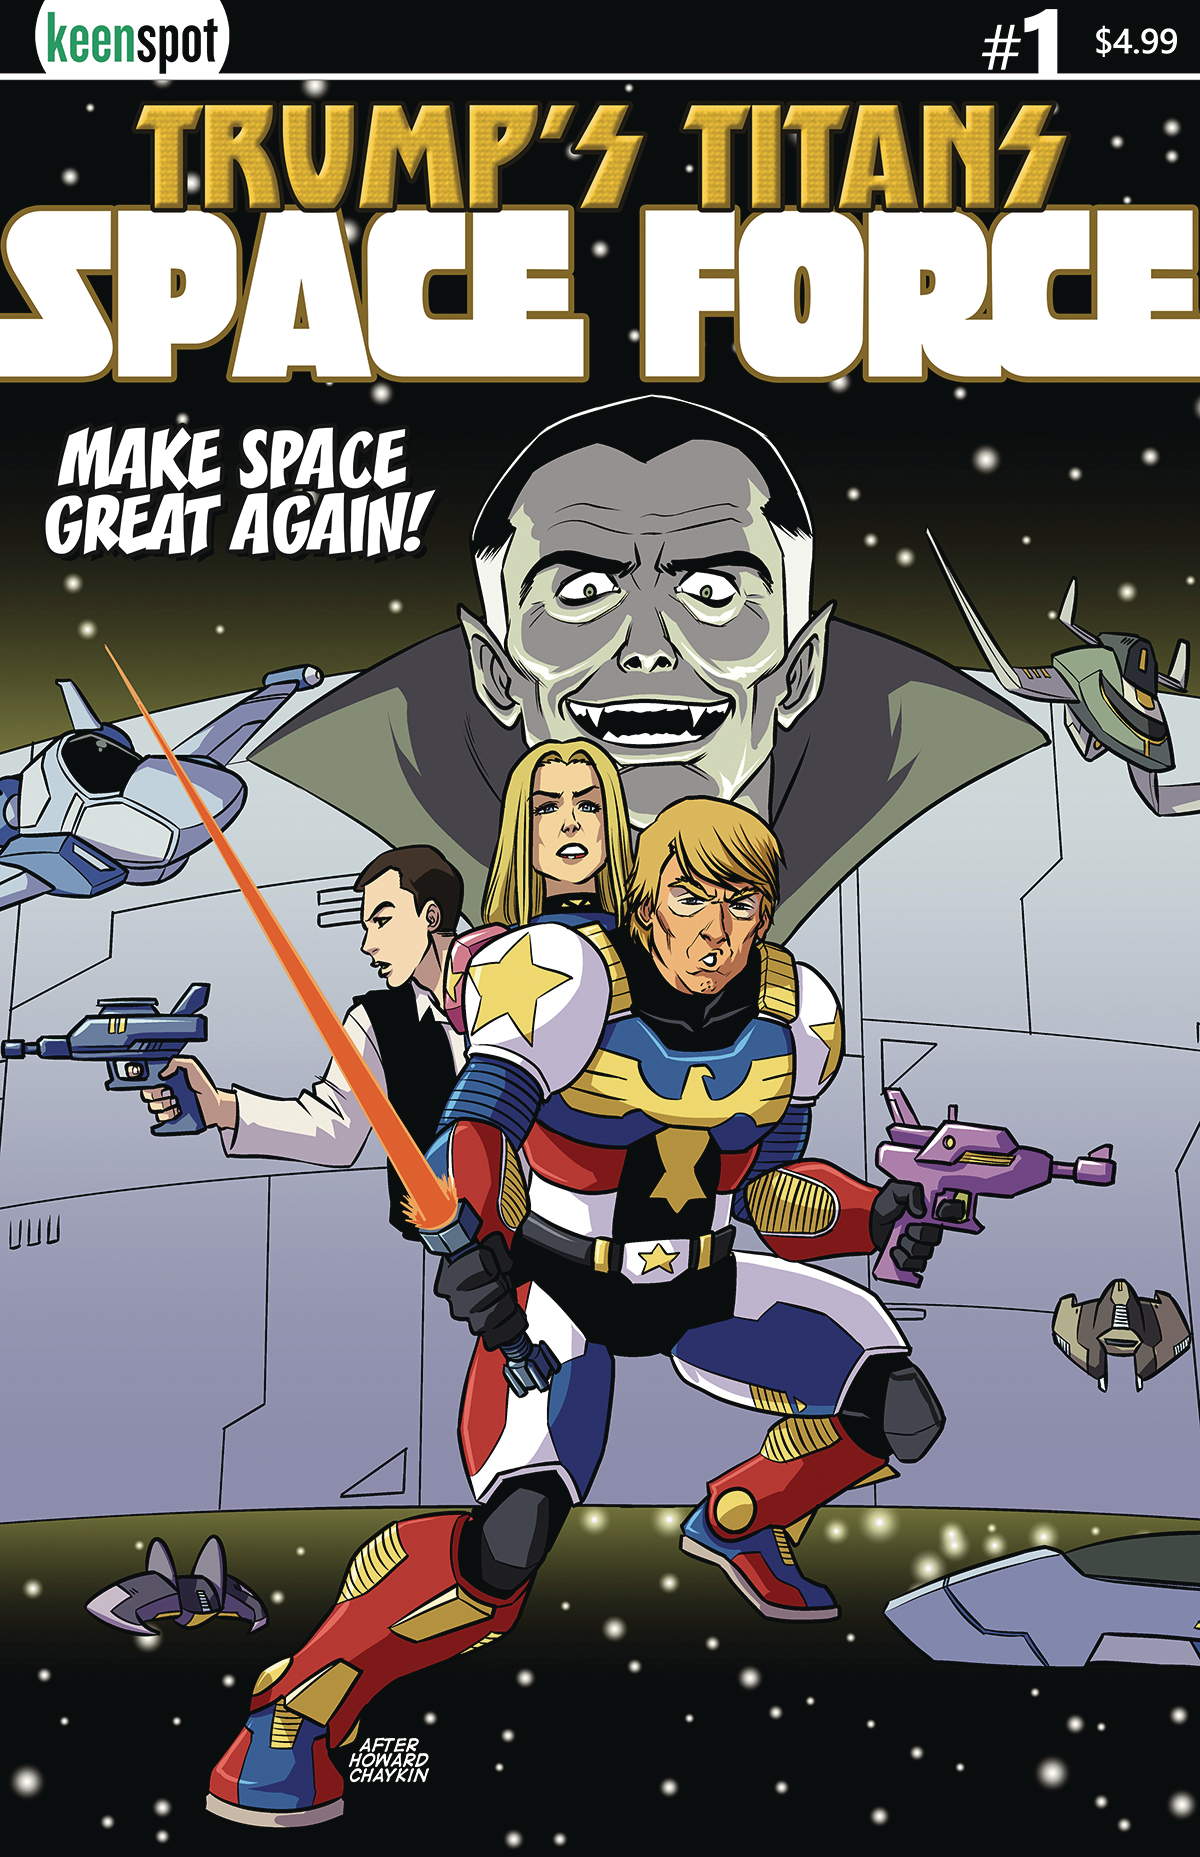 TRUMPS TITANS SPACE FORCE #1 (OF 1)